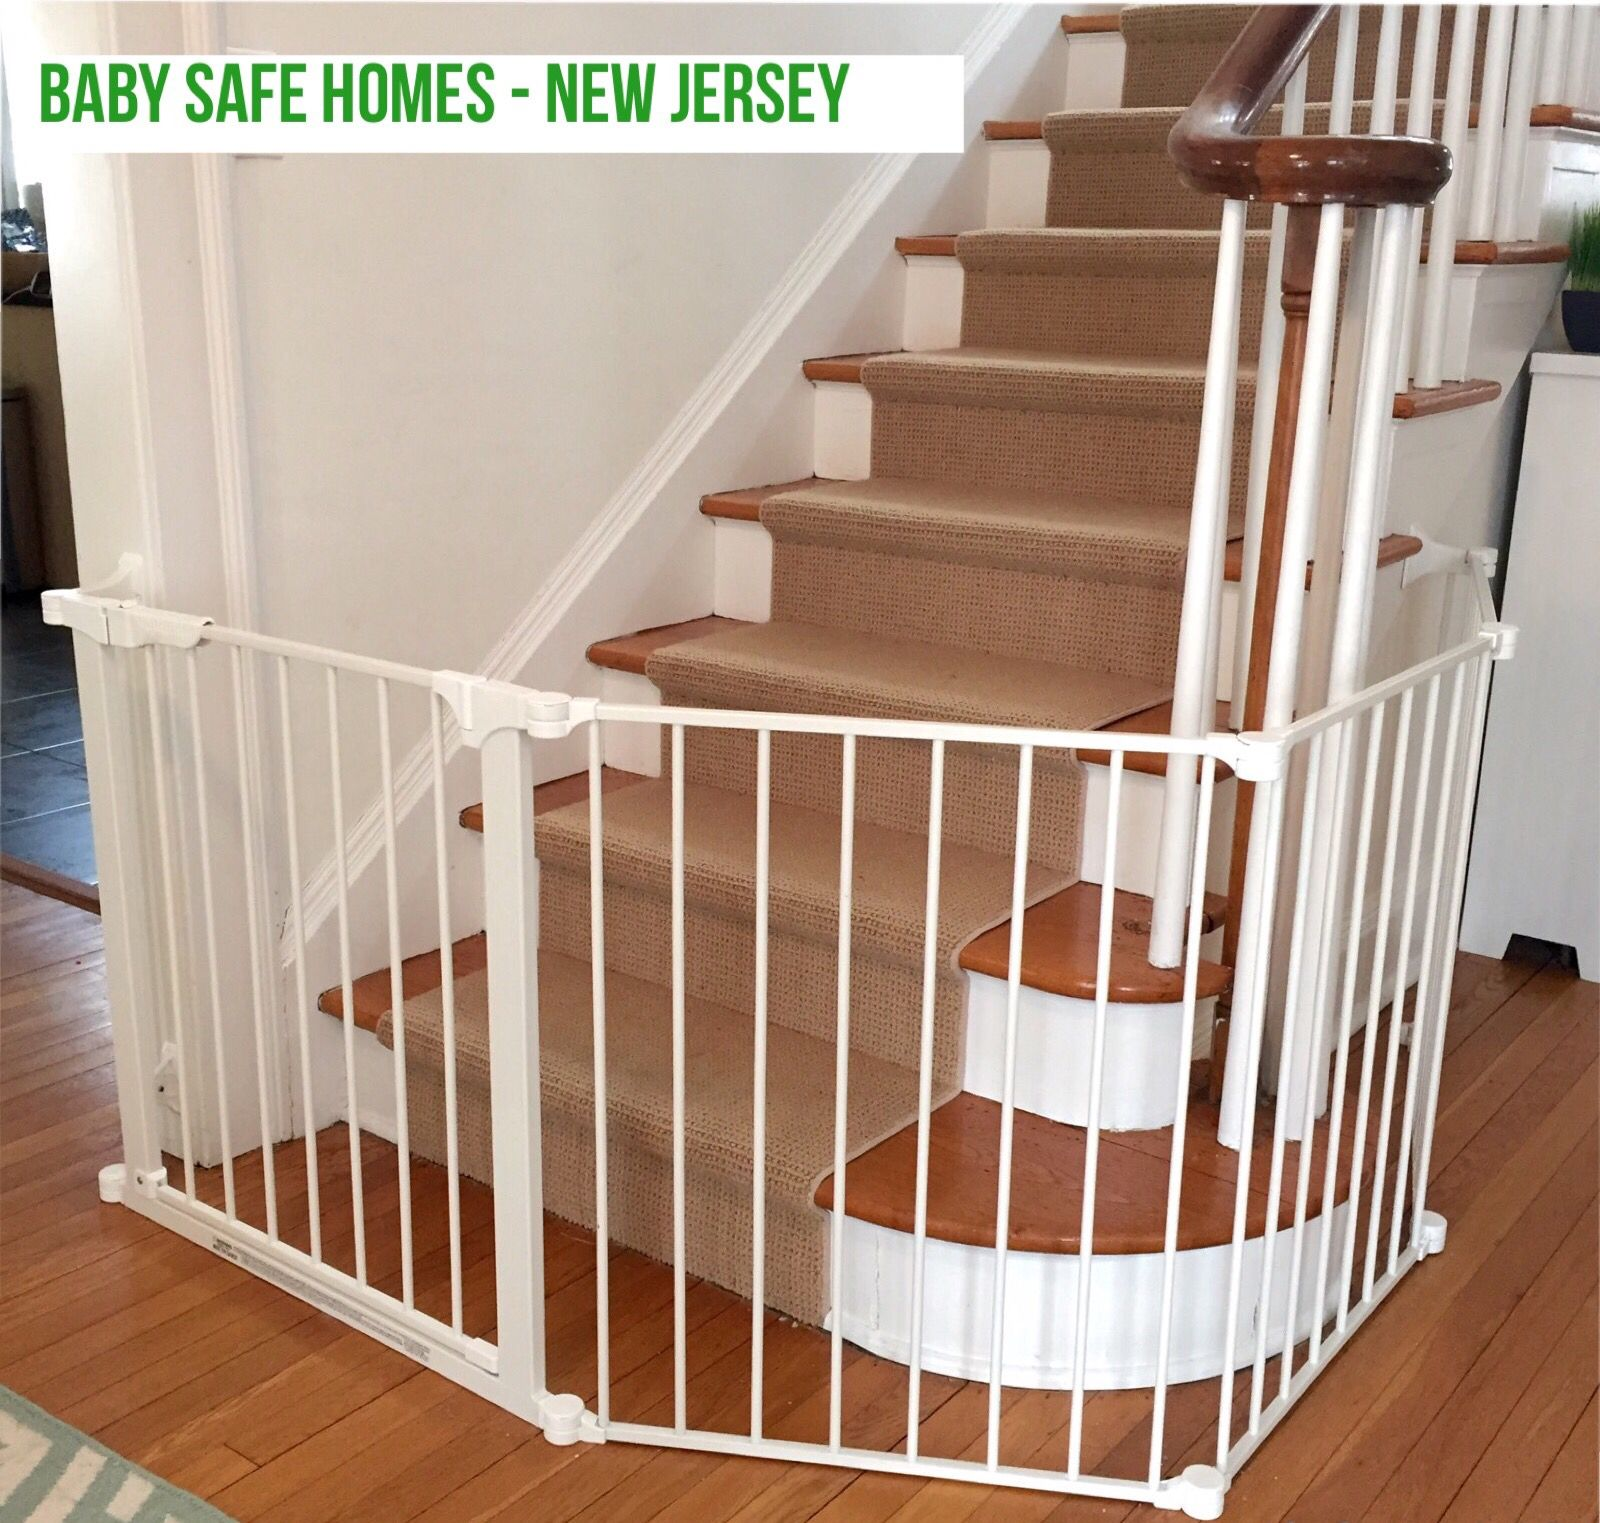 In this Maplewood home we installed a safety gate that